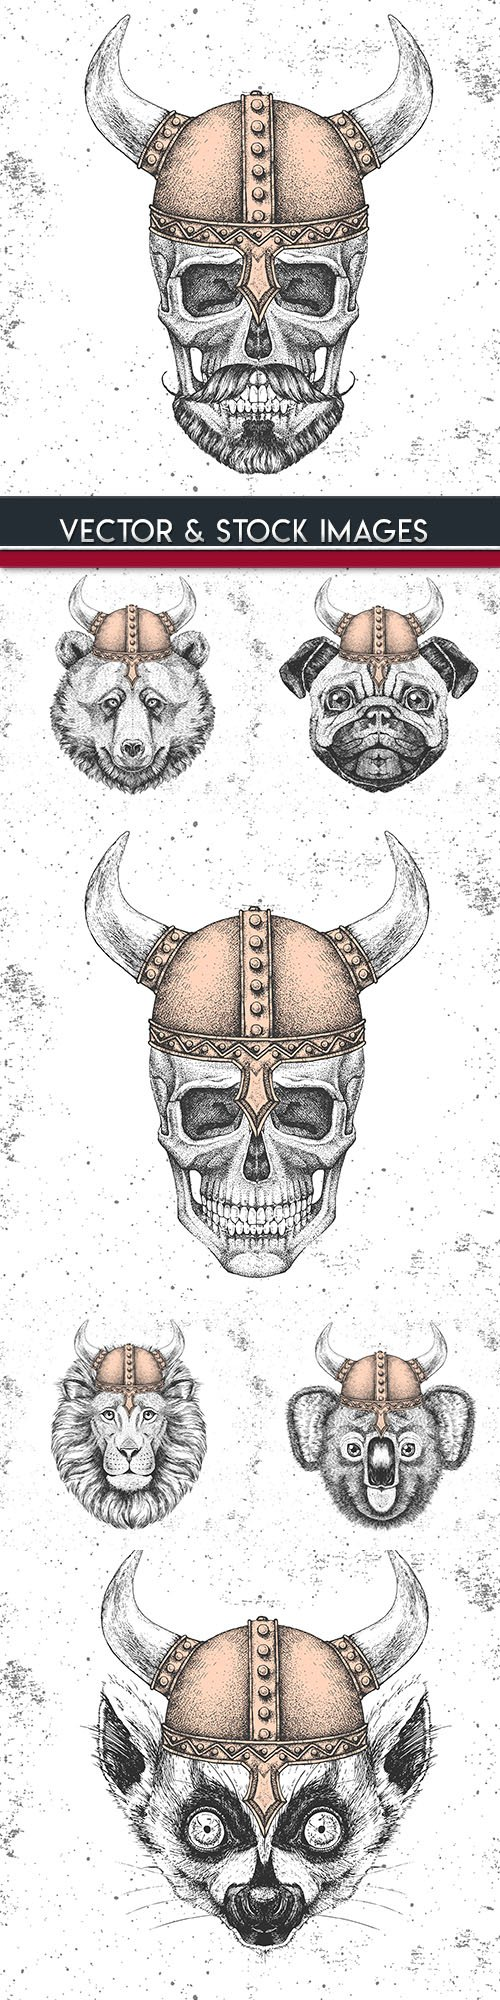 Head animal and skull in Viking grunge helmet drawing